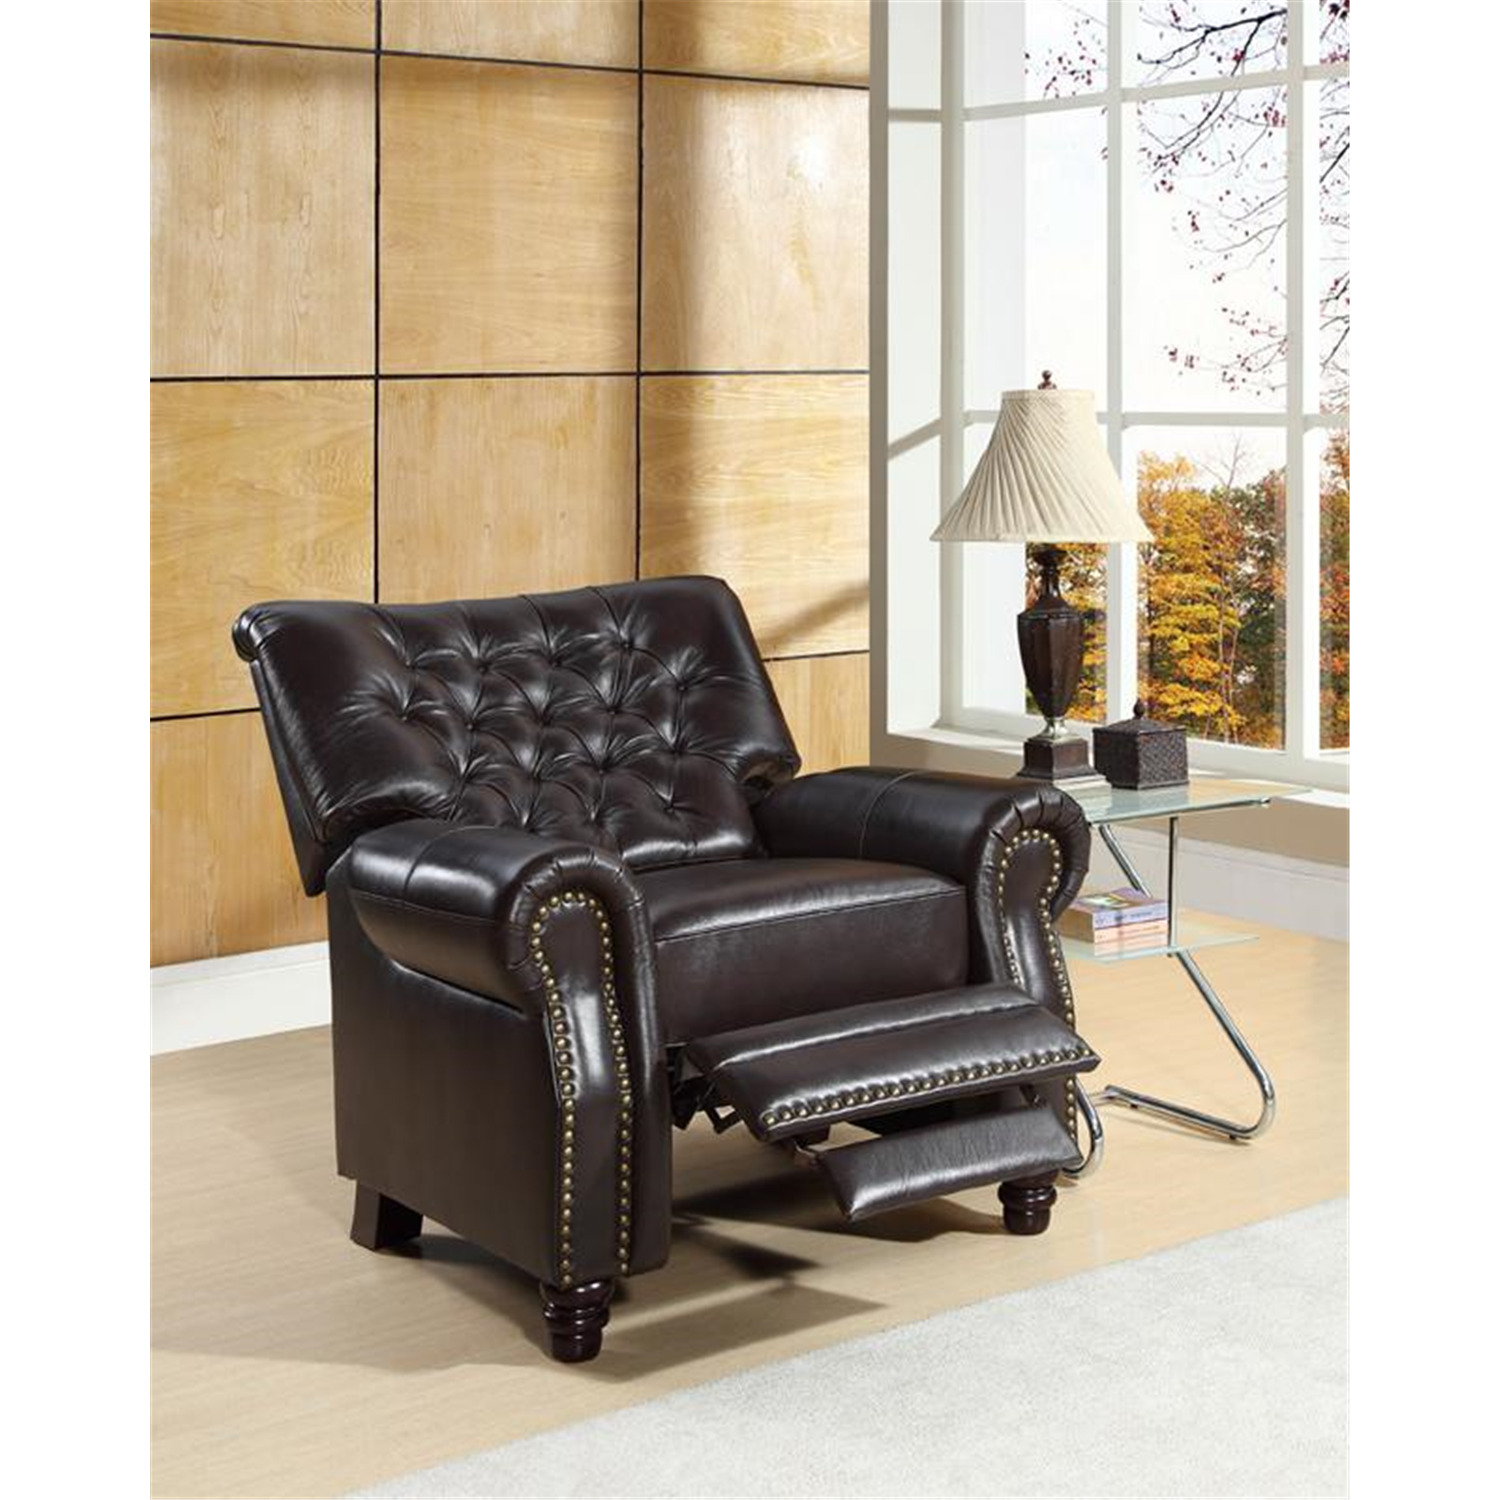 Abbyson living pushback leather recliner by oj commerce for Abbyson living sedona leather chaise recliner